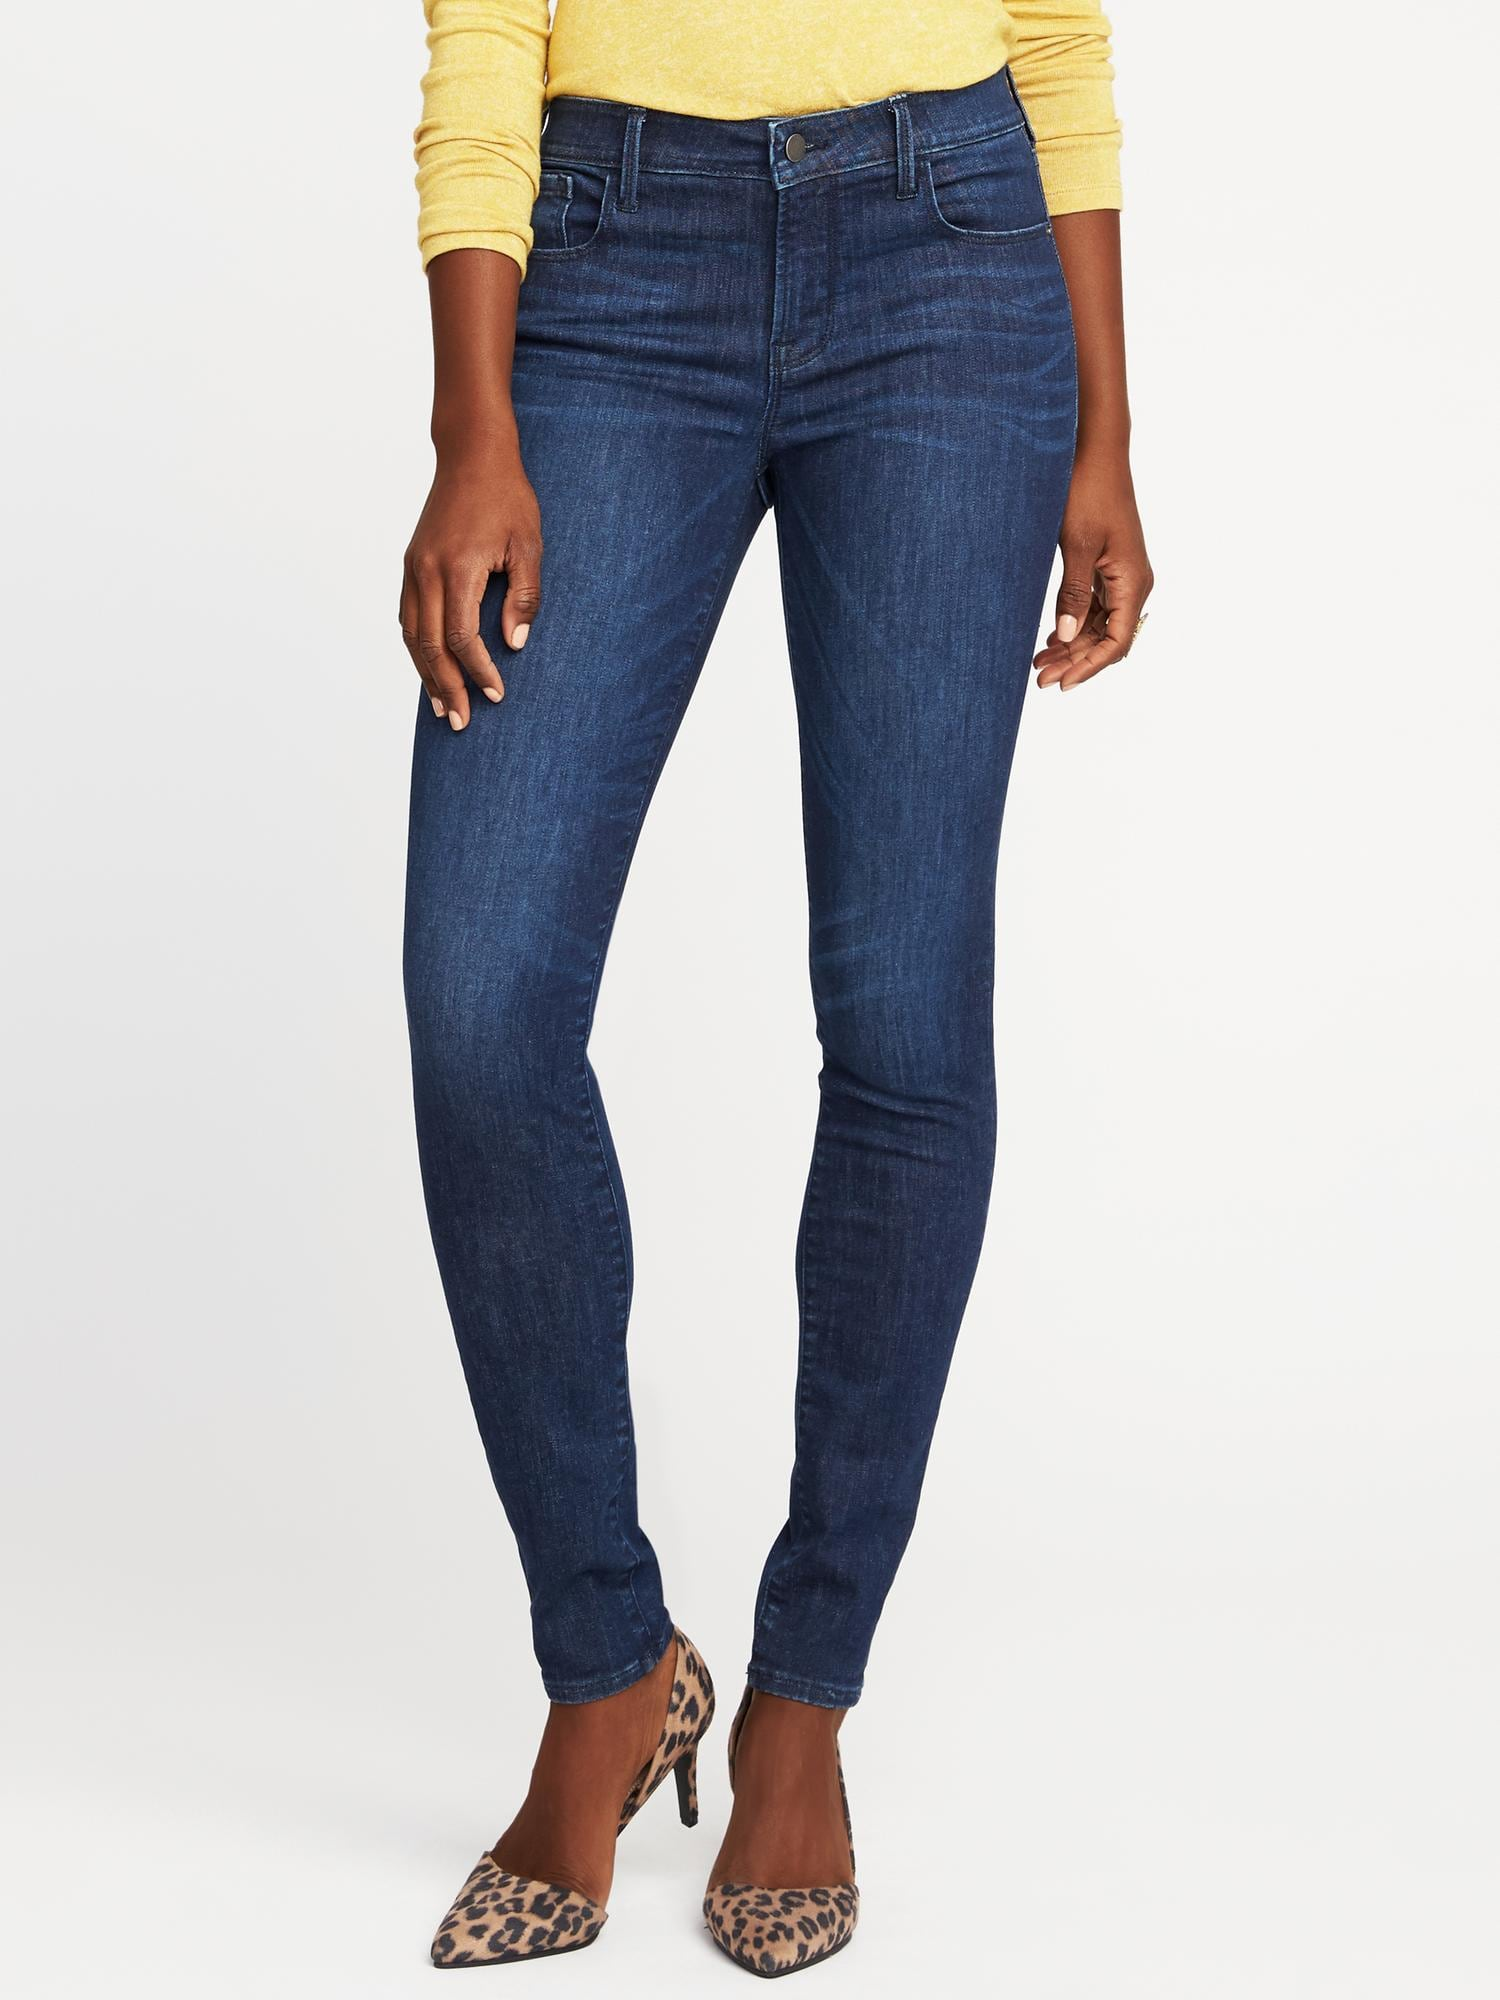 42a8886be3f Mid-Rise Built-In Sculpt Rockstar Jeans for Women